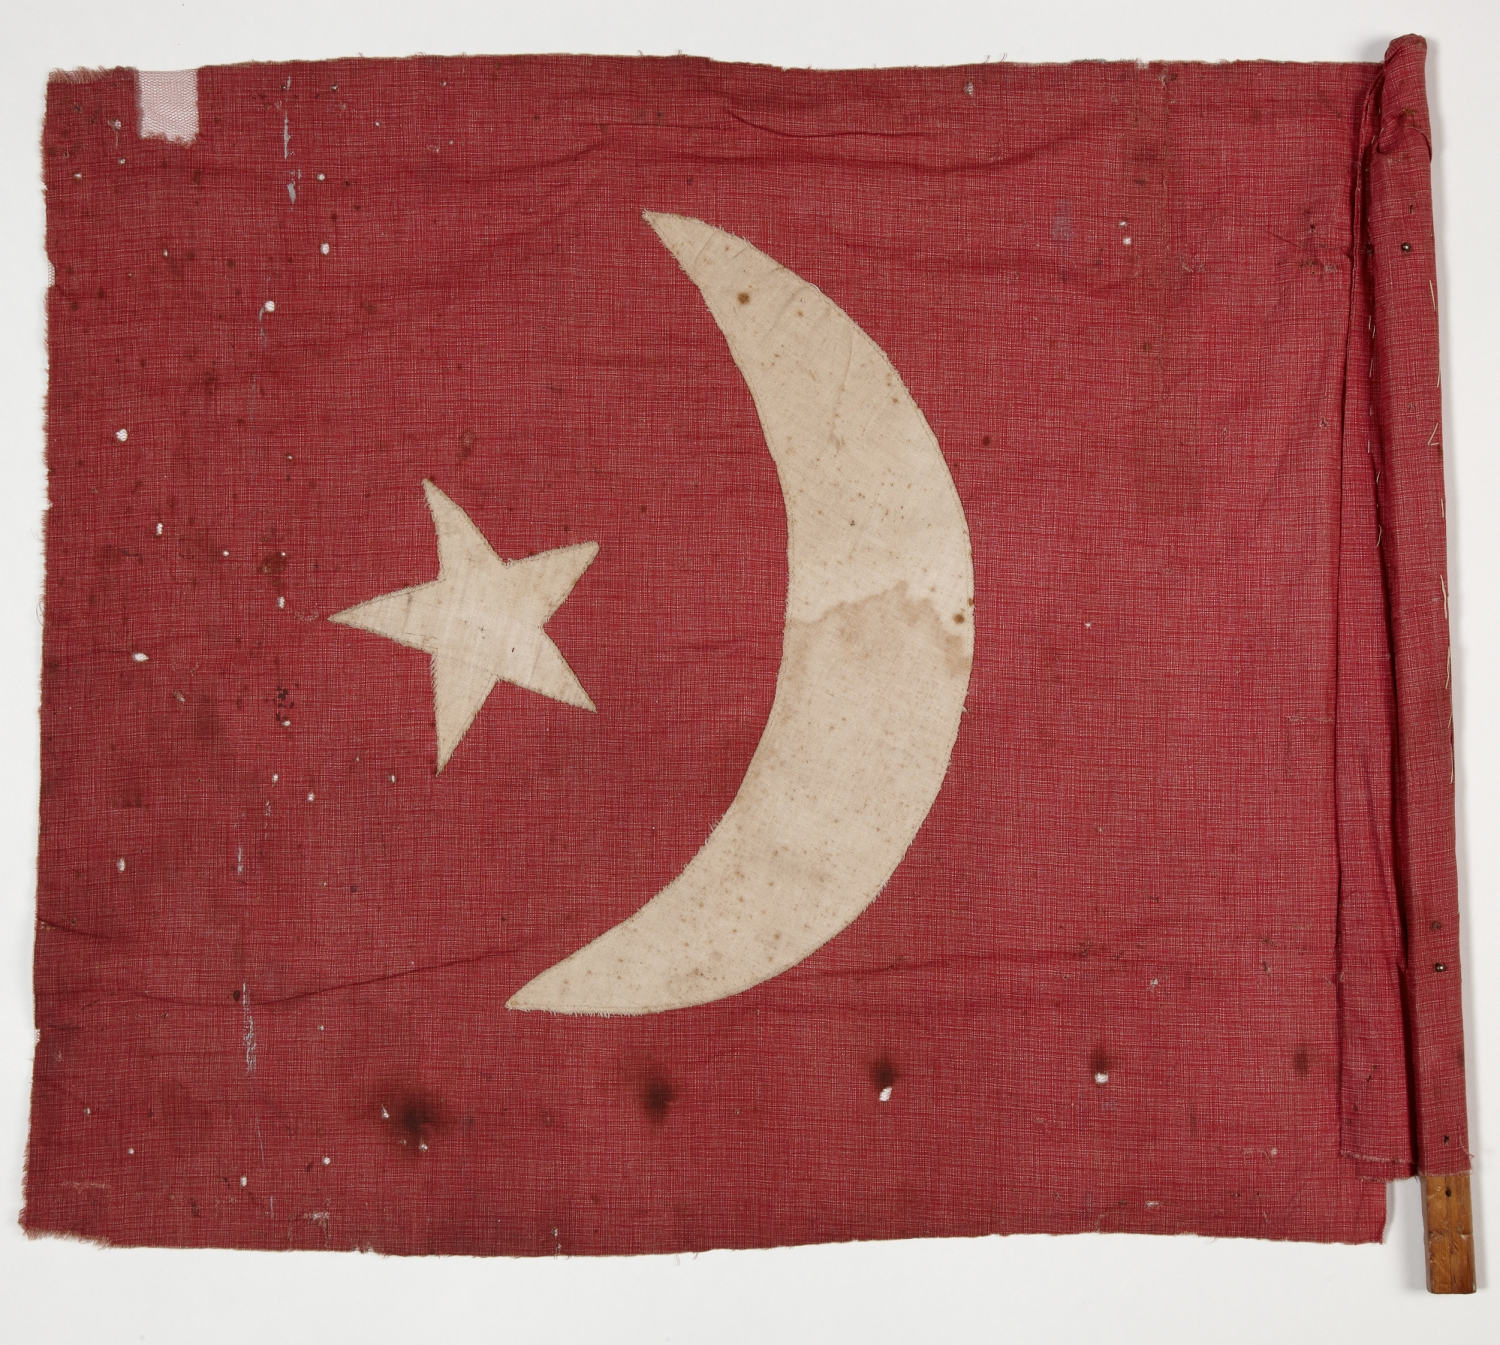 Red handmade flag with star and crescent moon sewn onto it.